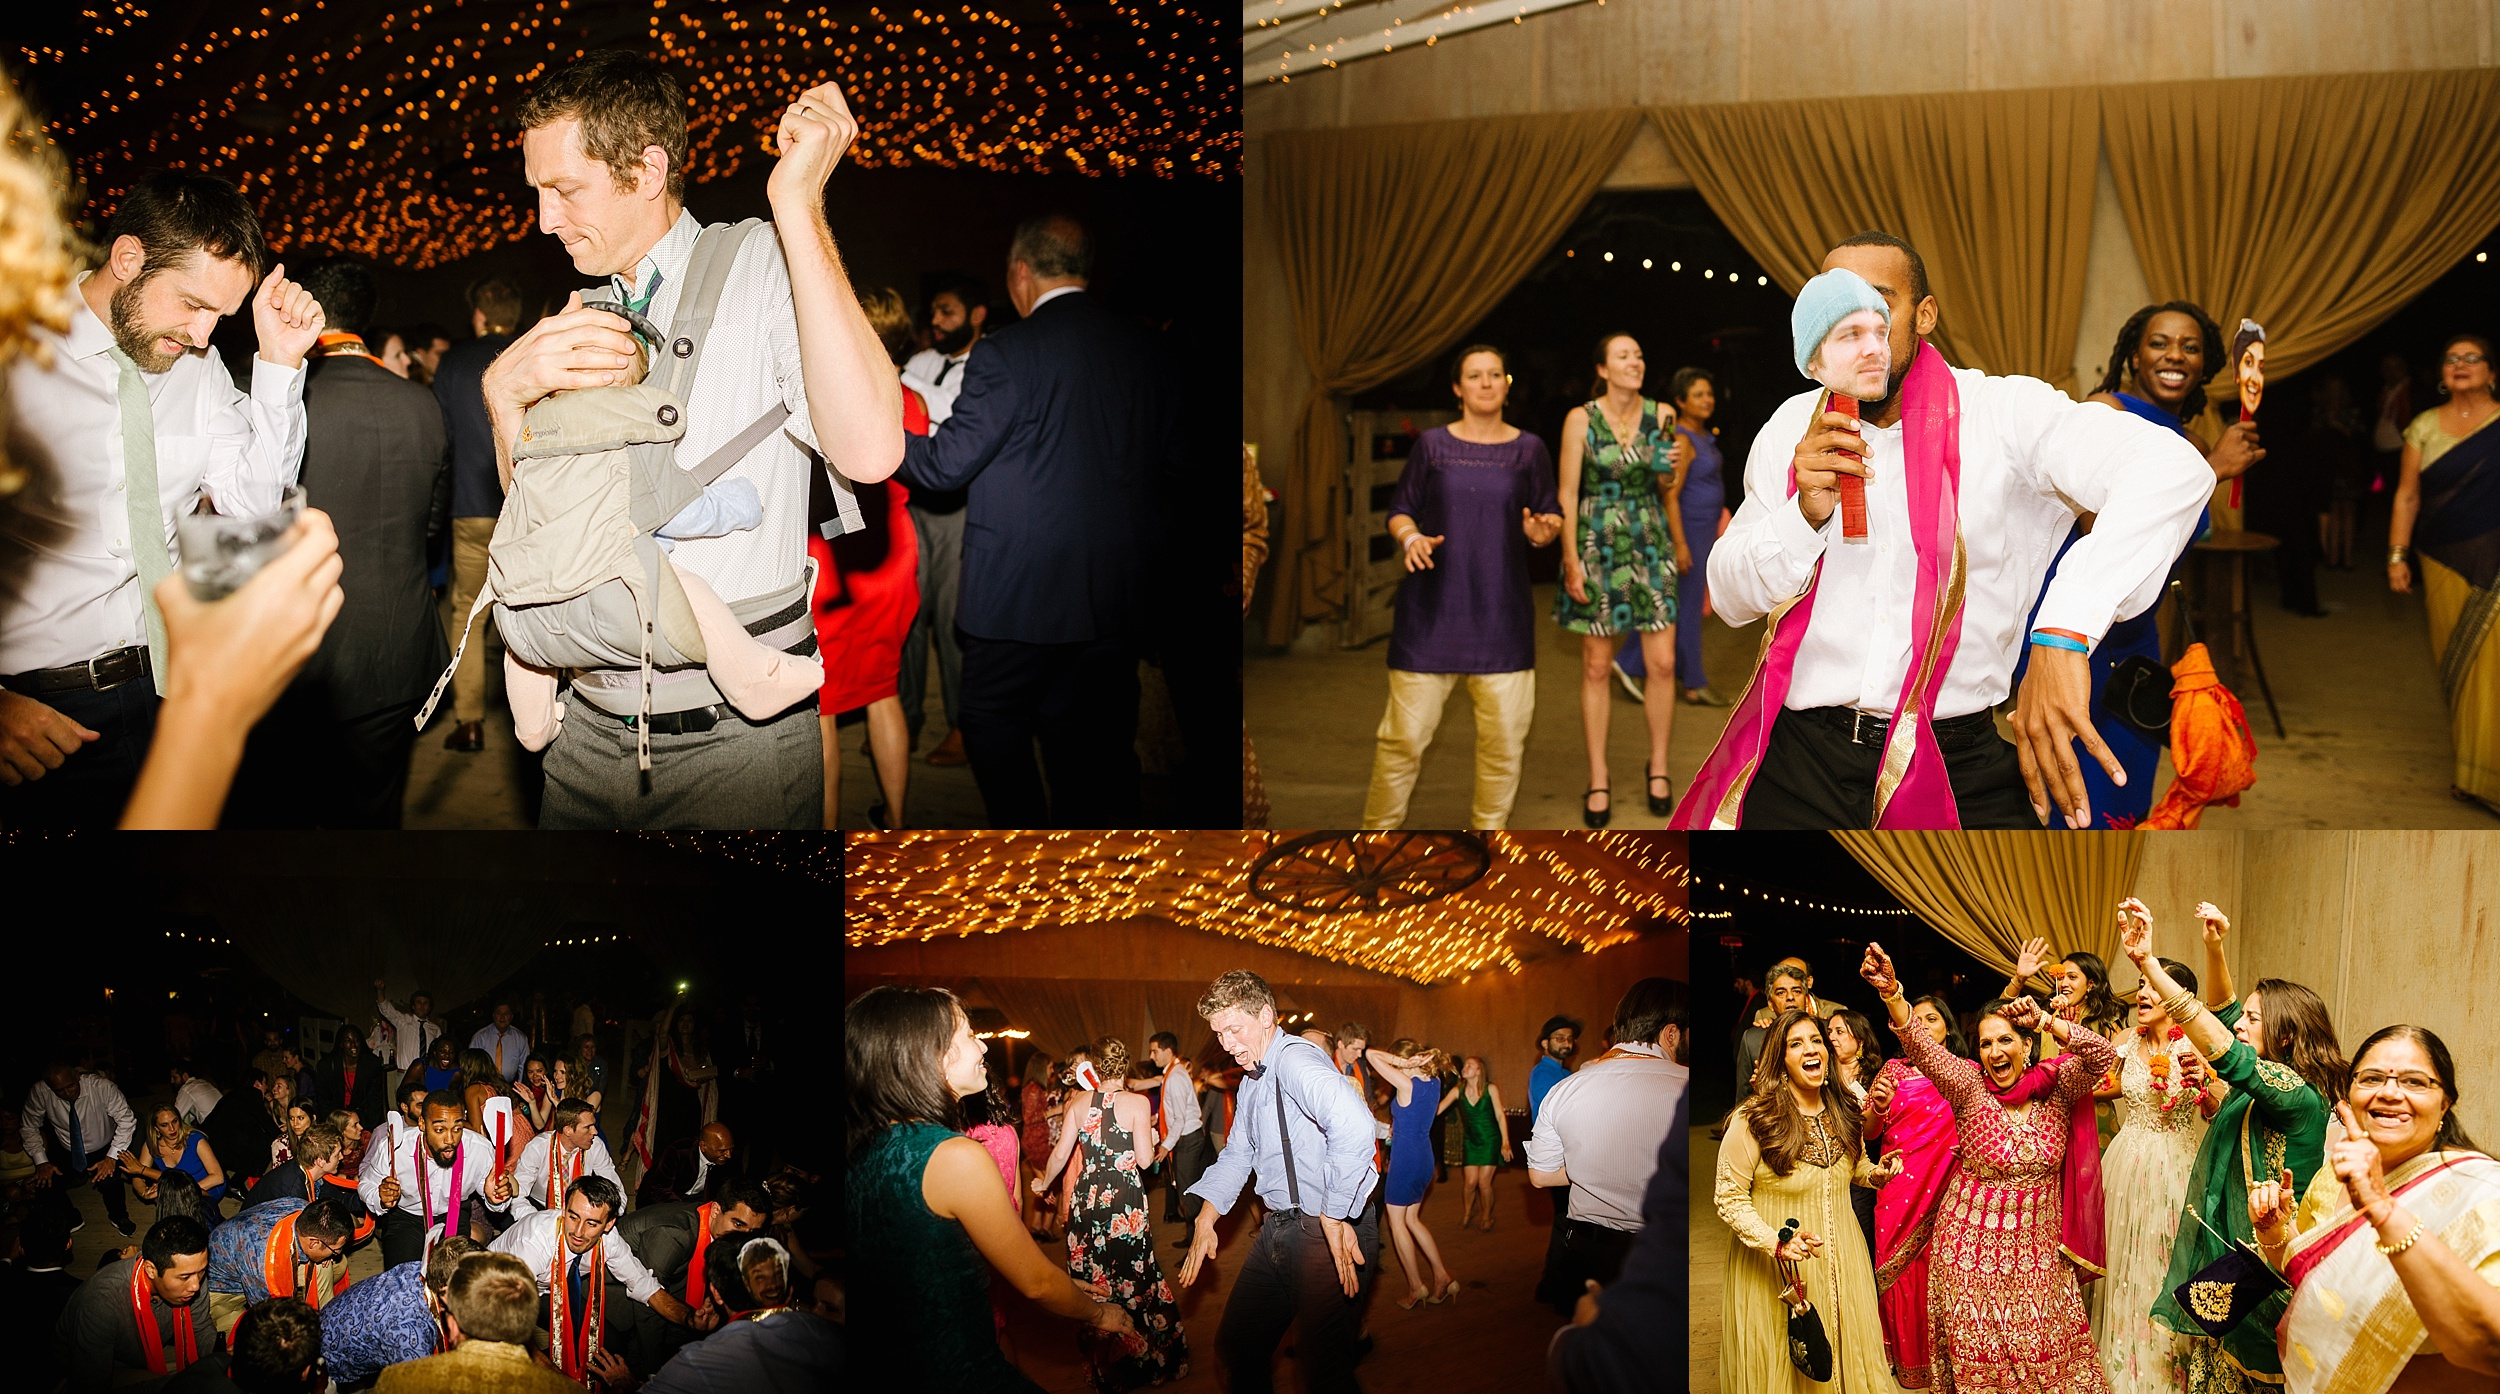 holman_ranch_wedding_cdp_karishma_danny_0030.jpg